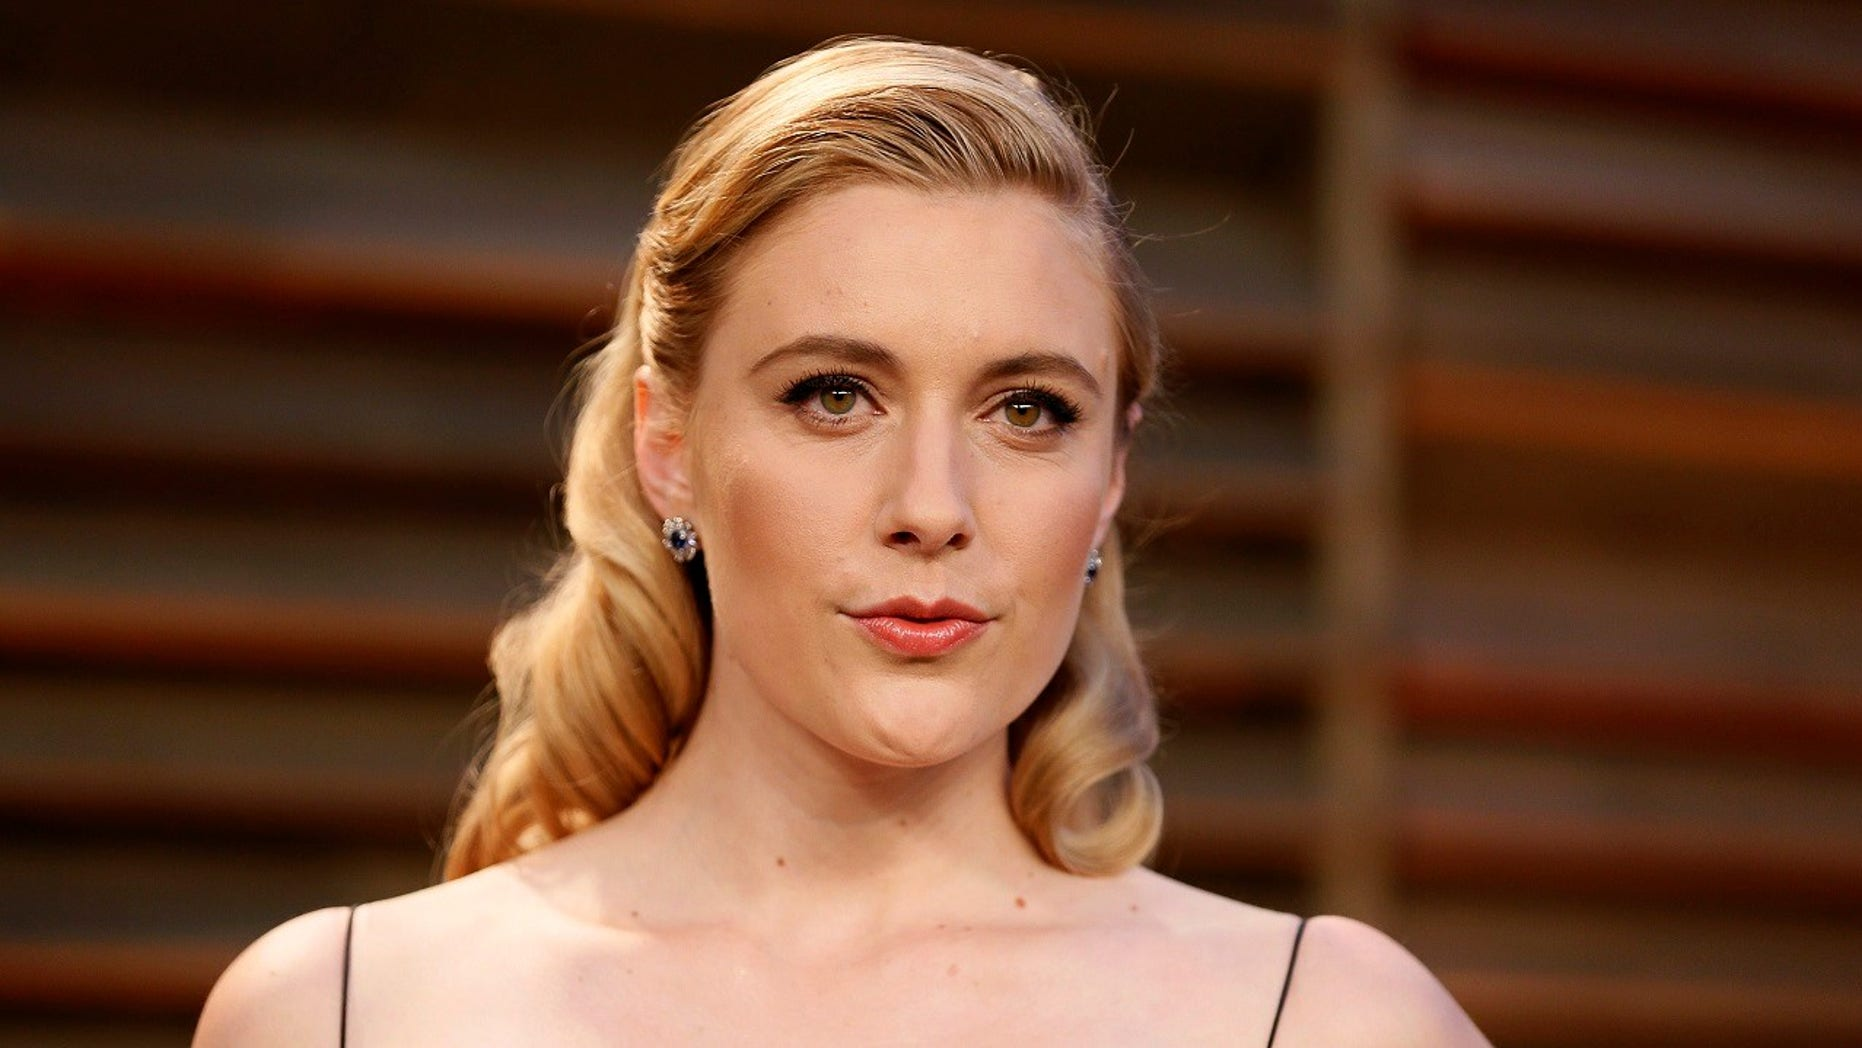 """Lady Bird"" director Greta Gerwig said she will never work with Woody Allen in another film."